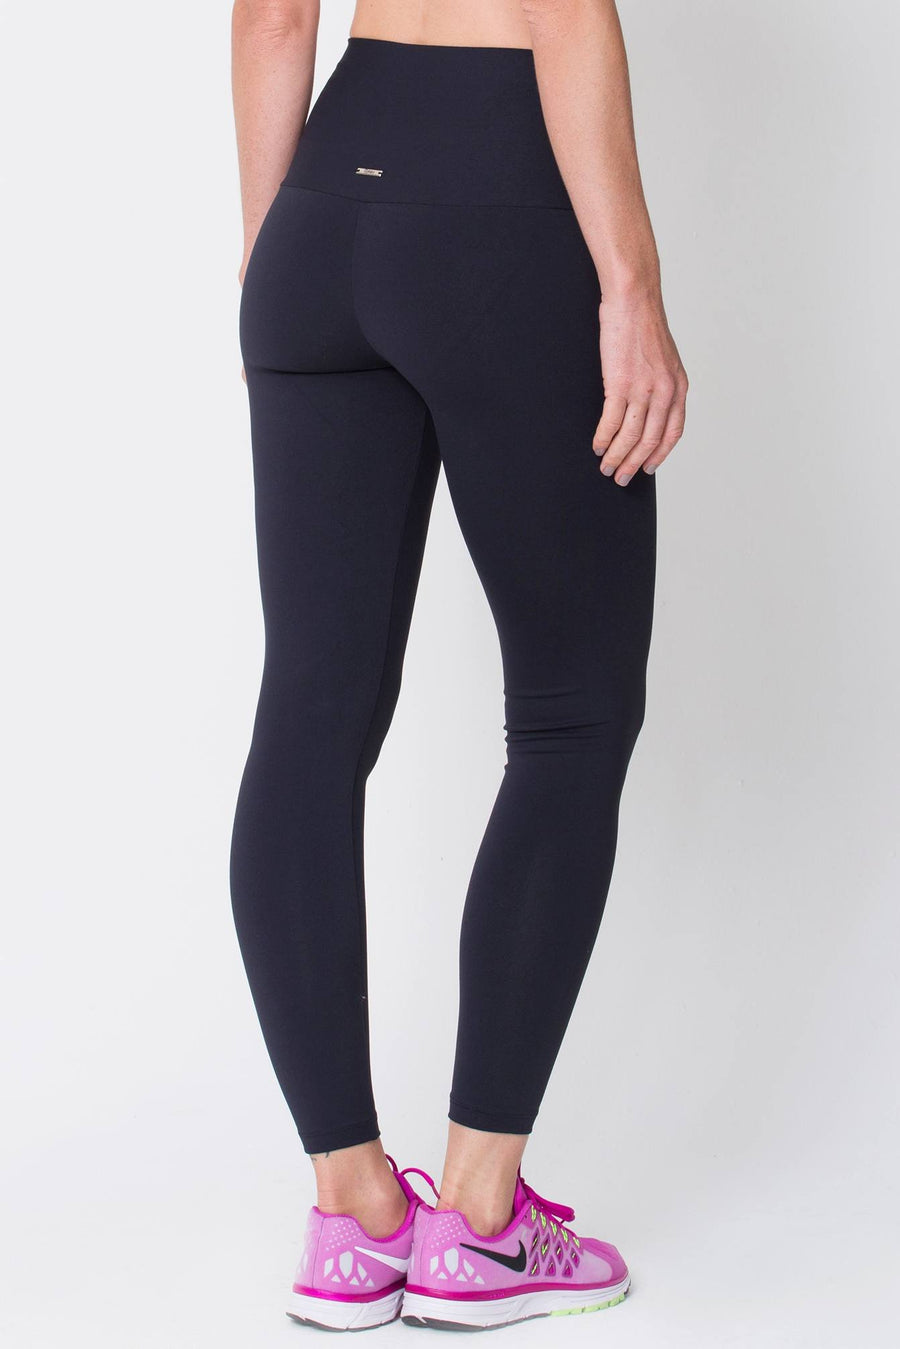 Everyday Essential Ultra High-Waist Legging - All Yoga Pants